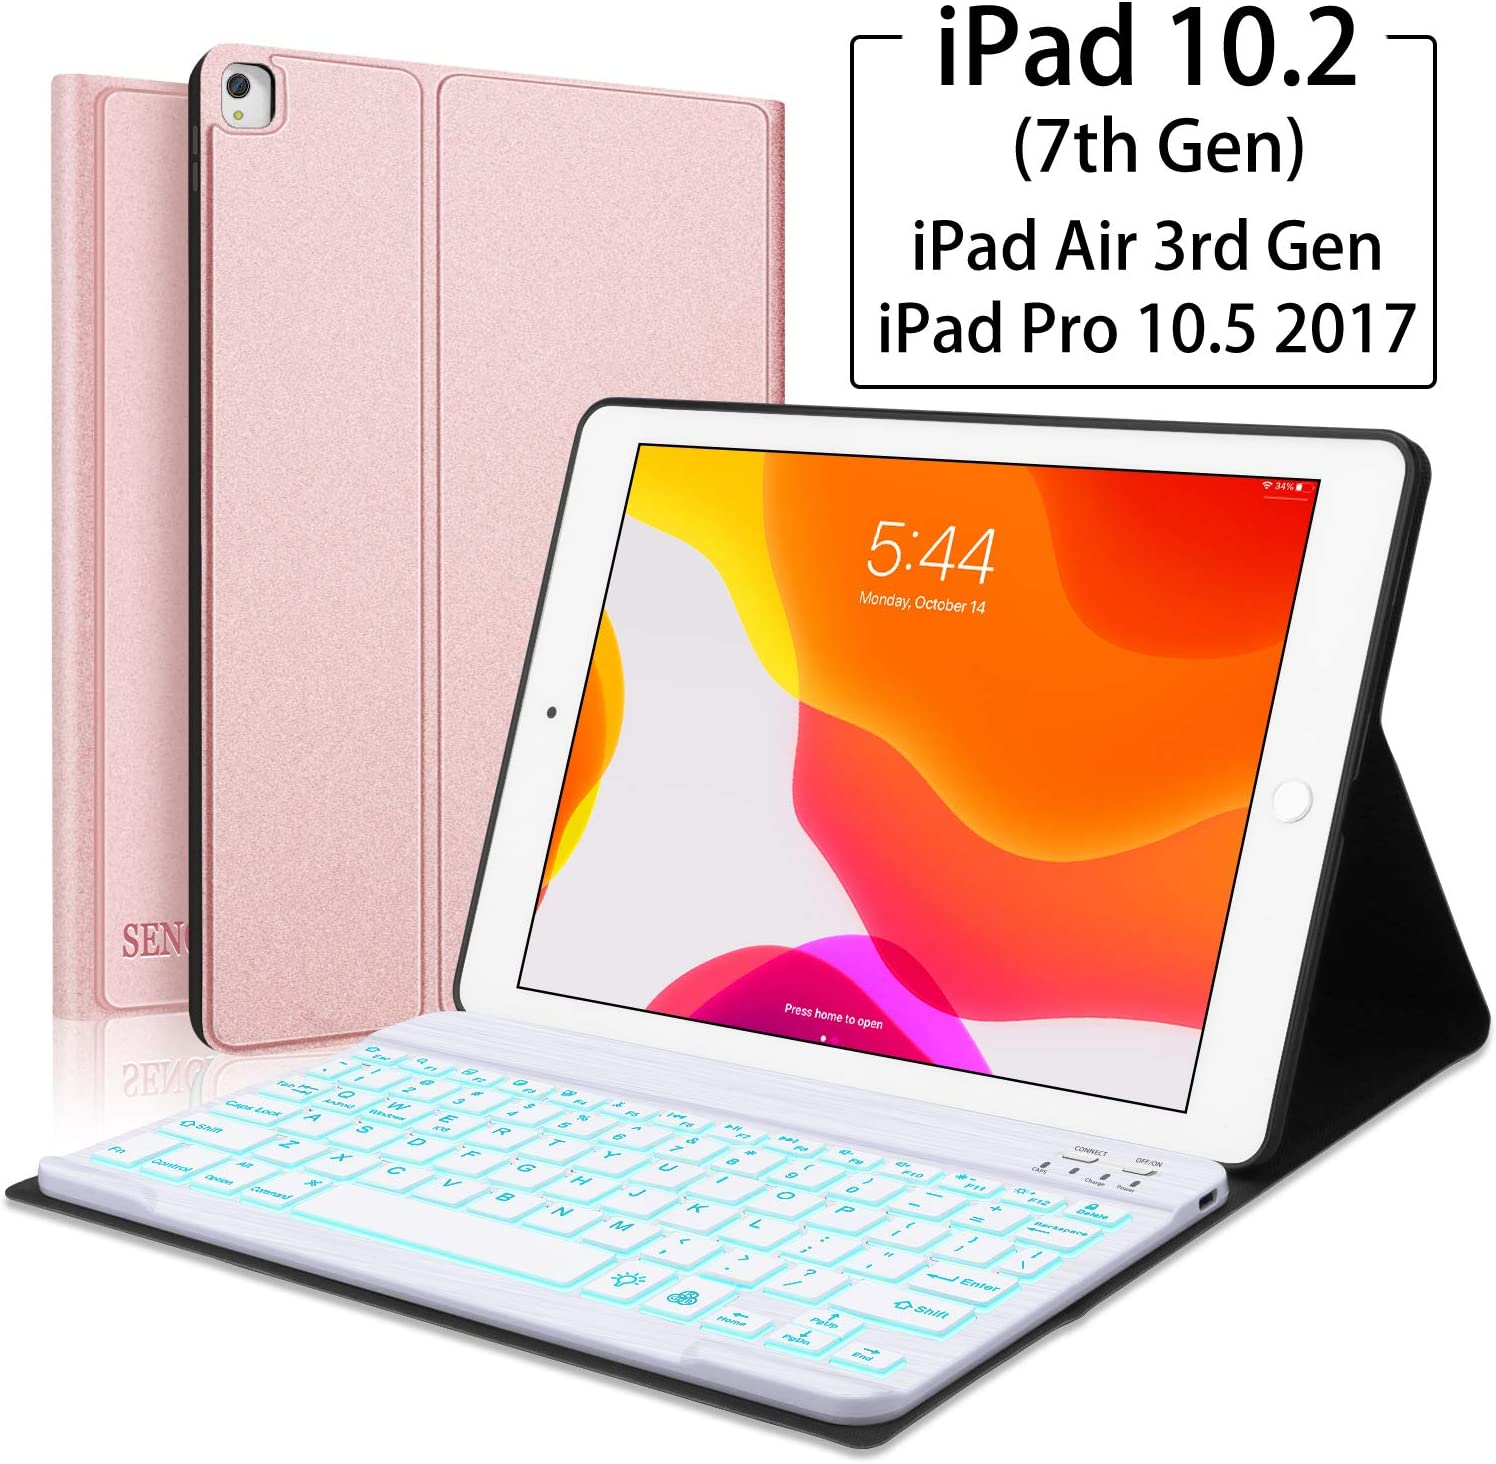 "iPad Keyboard Case for iPad 10.2(7th Generation)- iPad Pro 10.5 (Air 3) - 7 Colors Backlight, Magnetically Detachable Wireless Keyboard - Folio Cover for New iPad 10.2"" Inch, Rose gold"